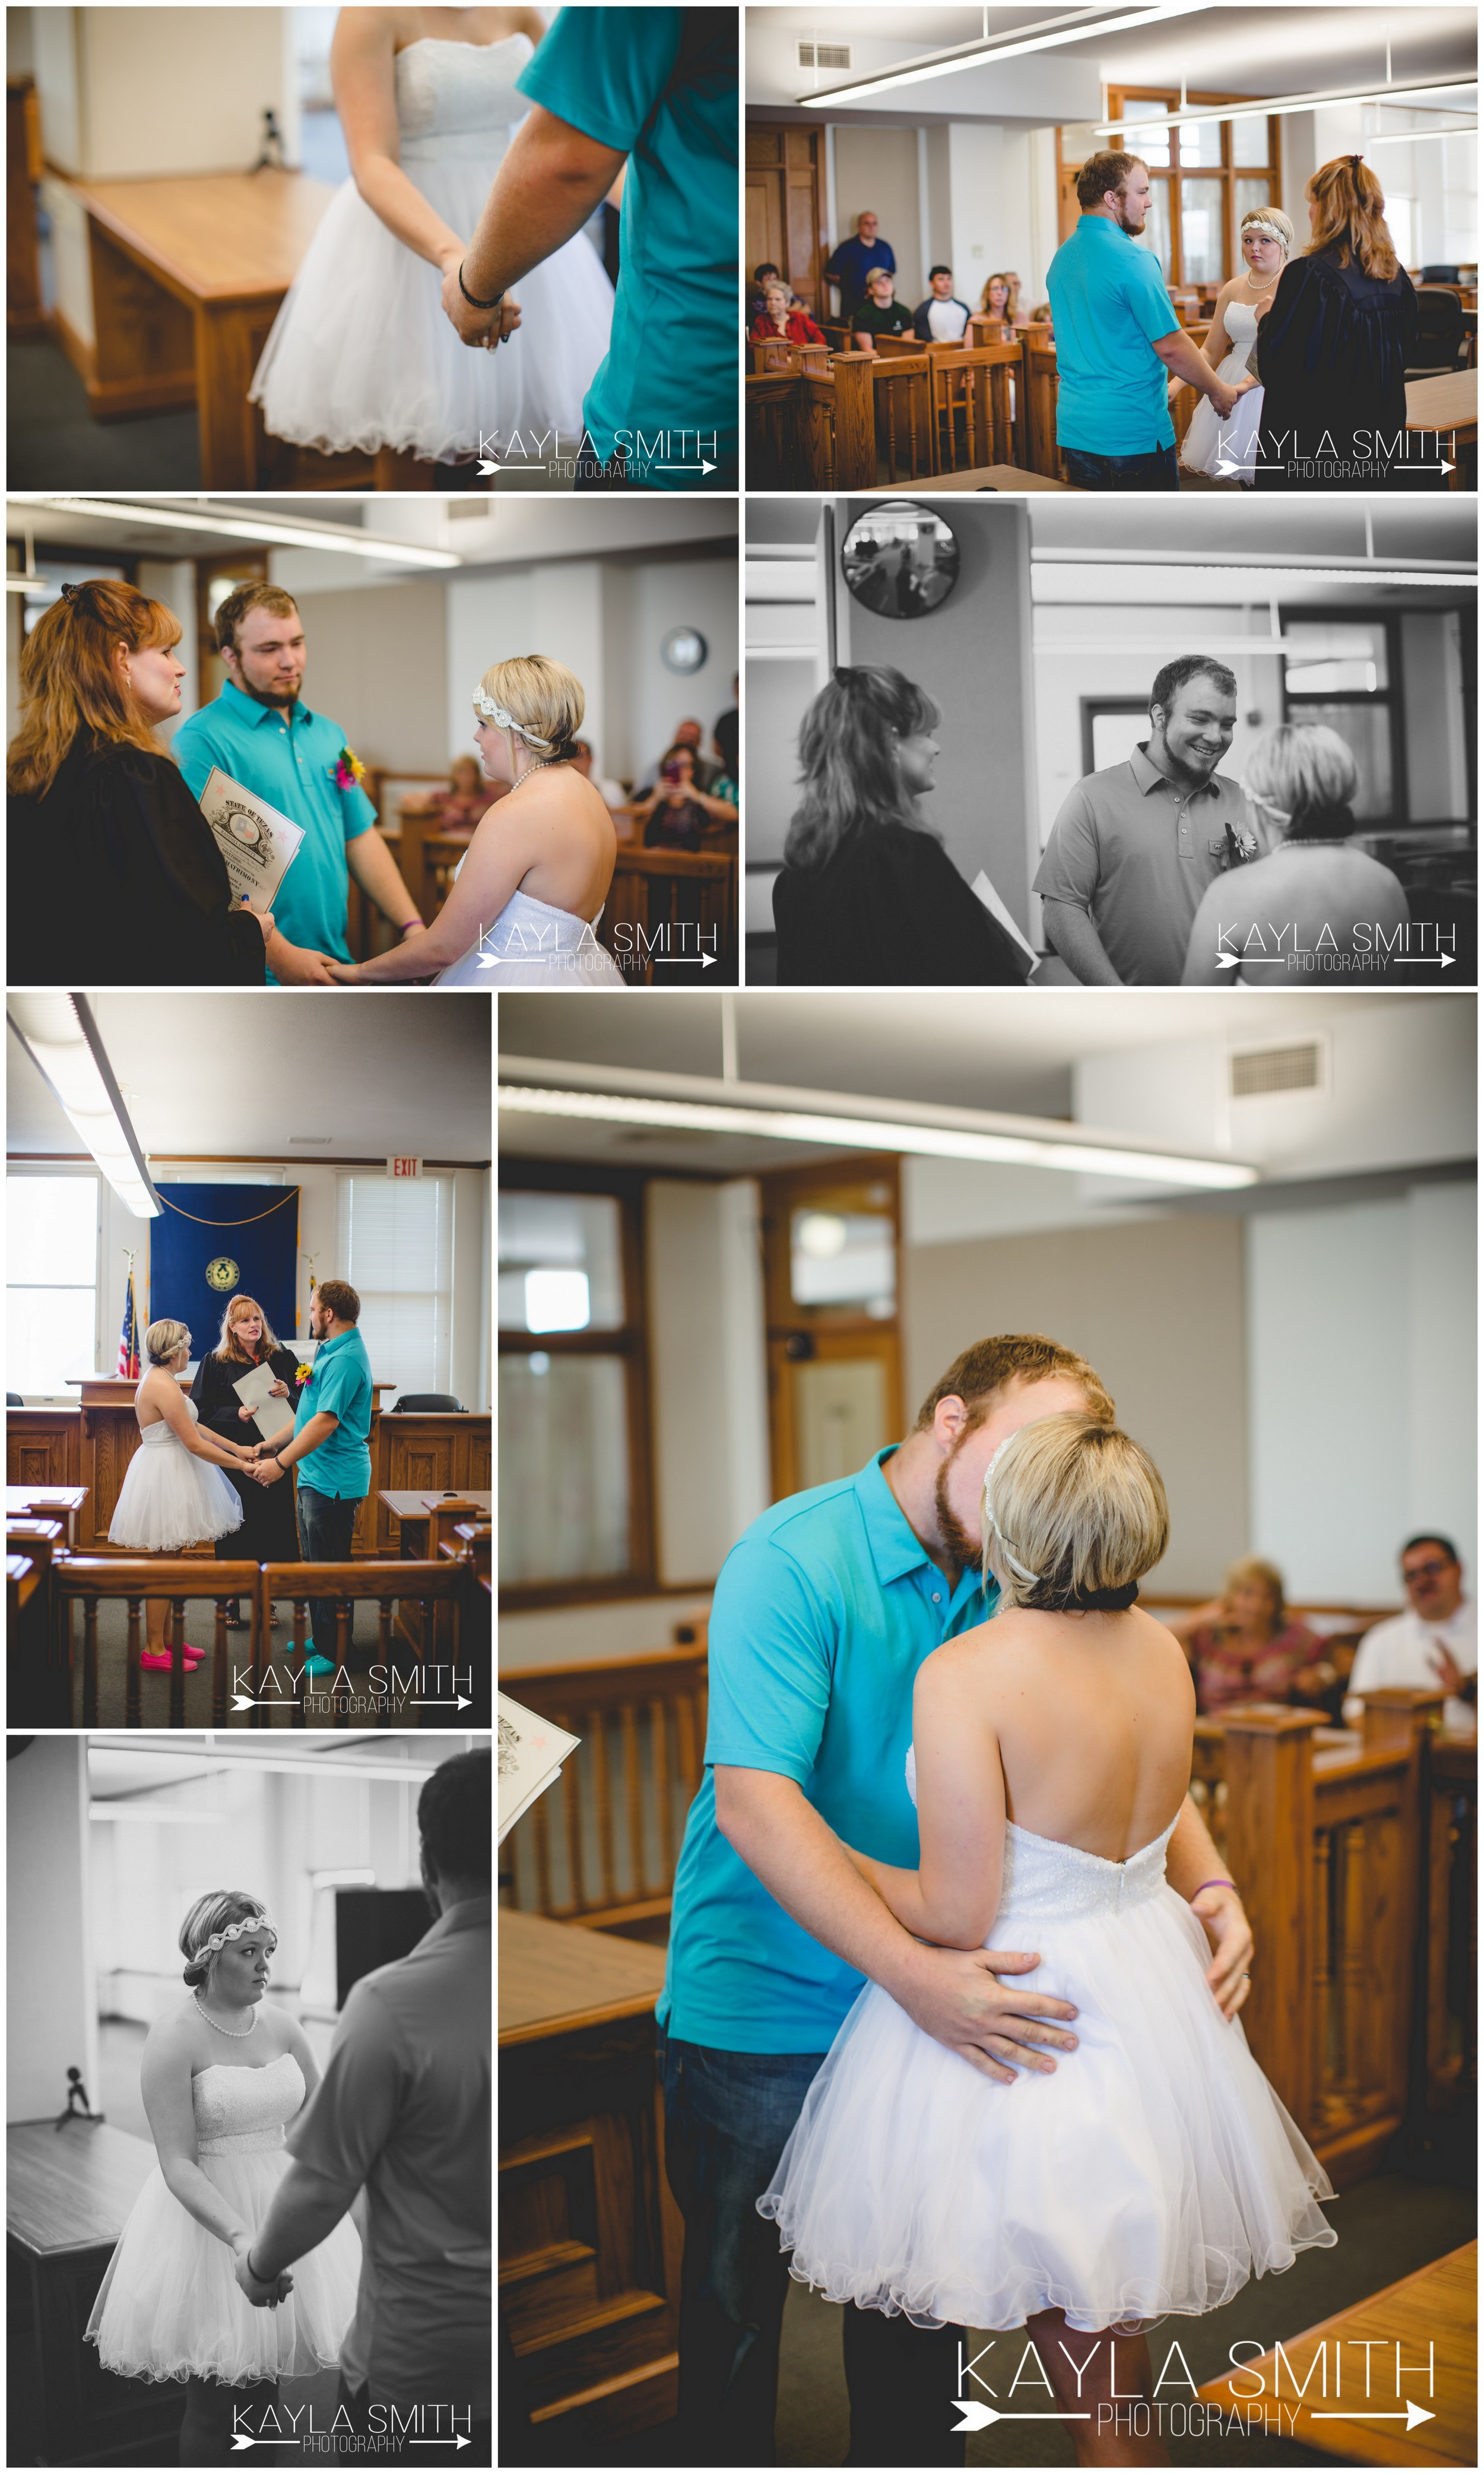 The couple eloped in the Santa Fe Building in downtown Amarillo.